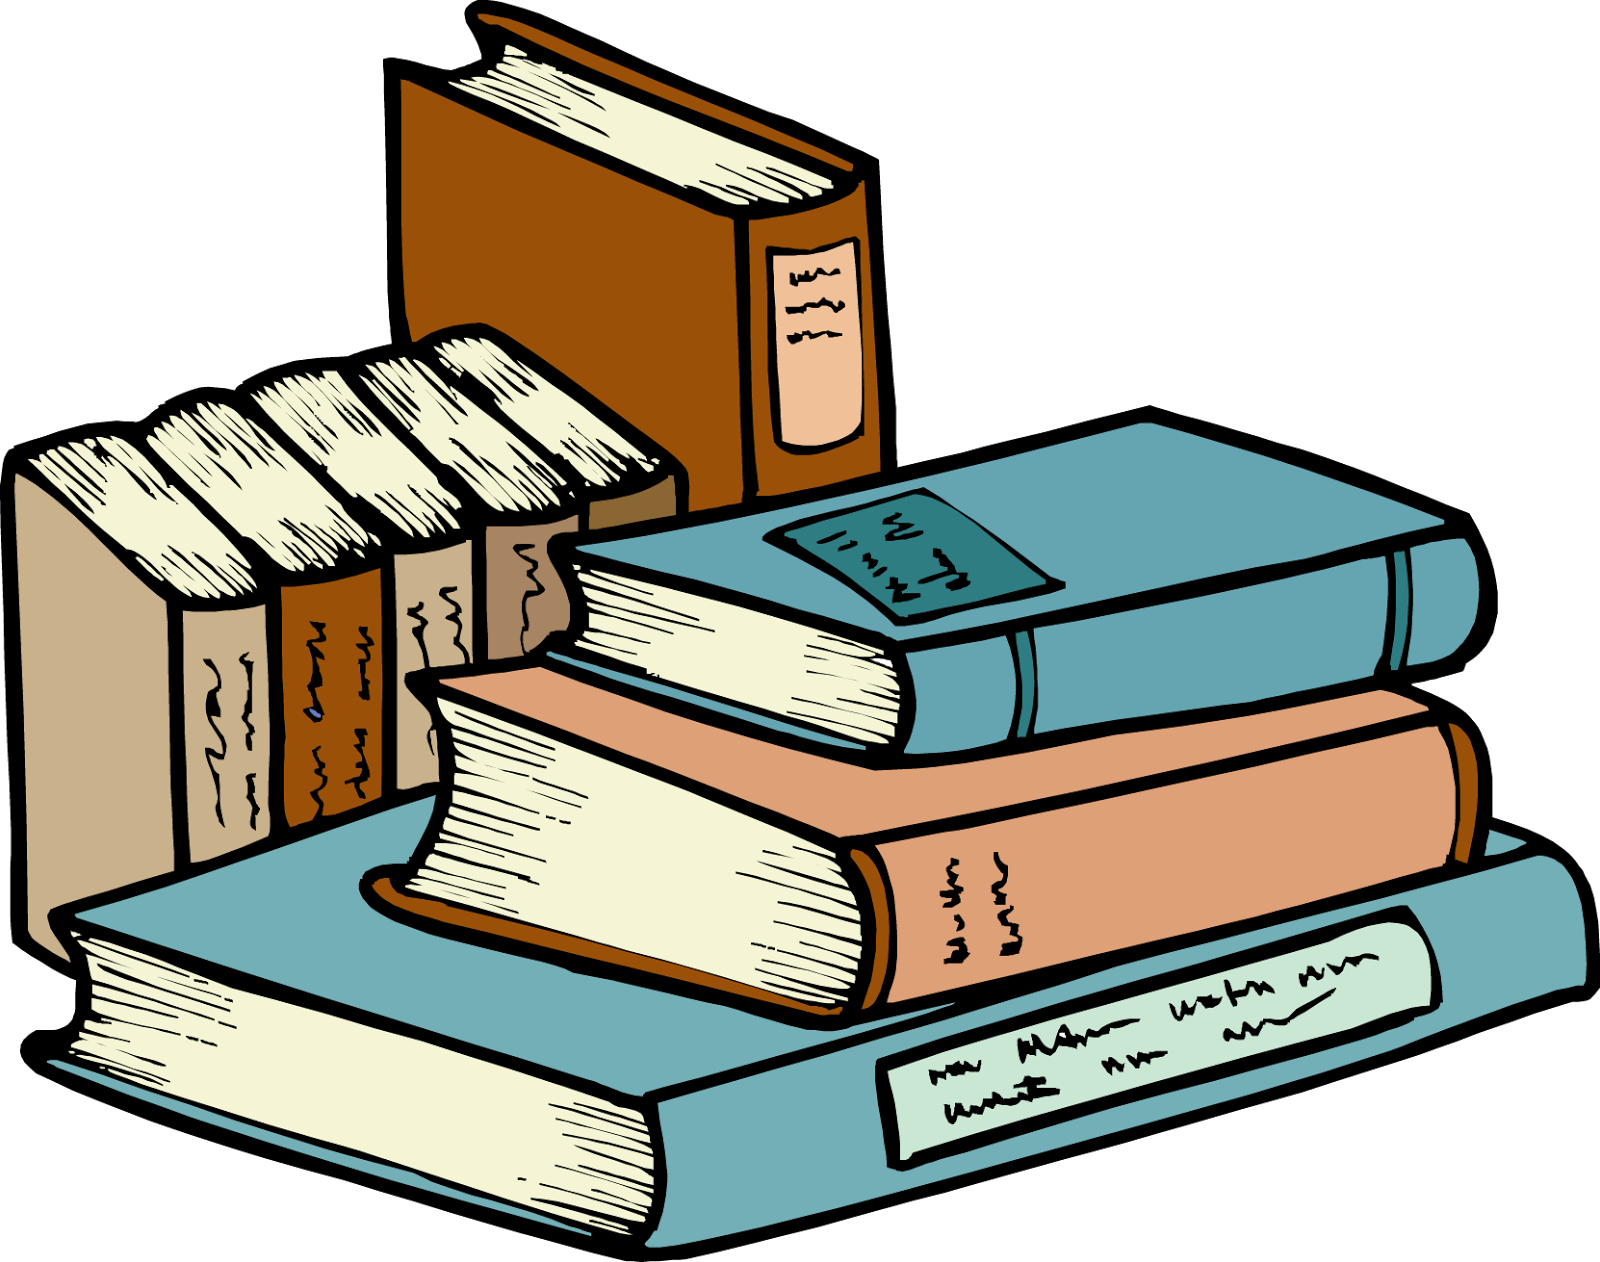 Clipart book royalty free library Stack Of Books Clipart | Clipart Panda - Free Clipart Images royalty free library